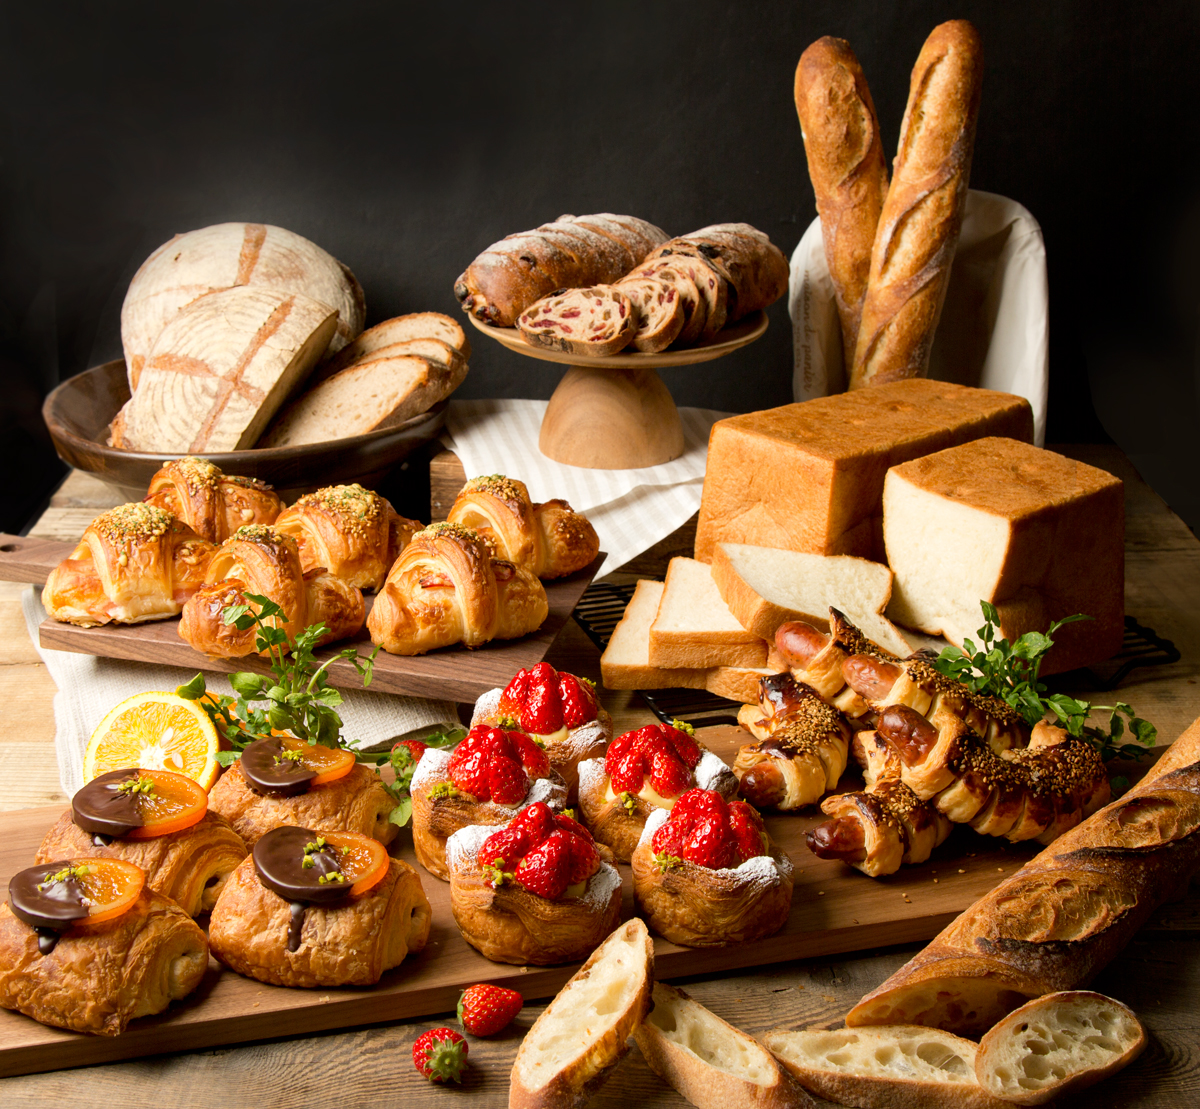 Bread Cafe, A Delicious and Tasty Business Idea